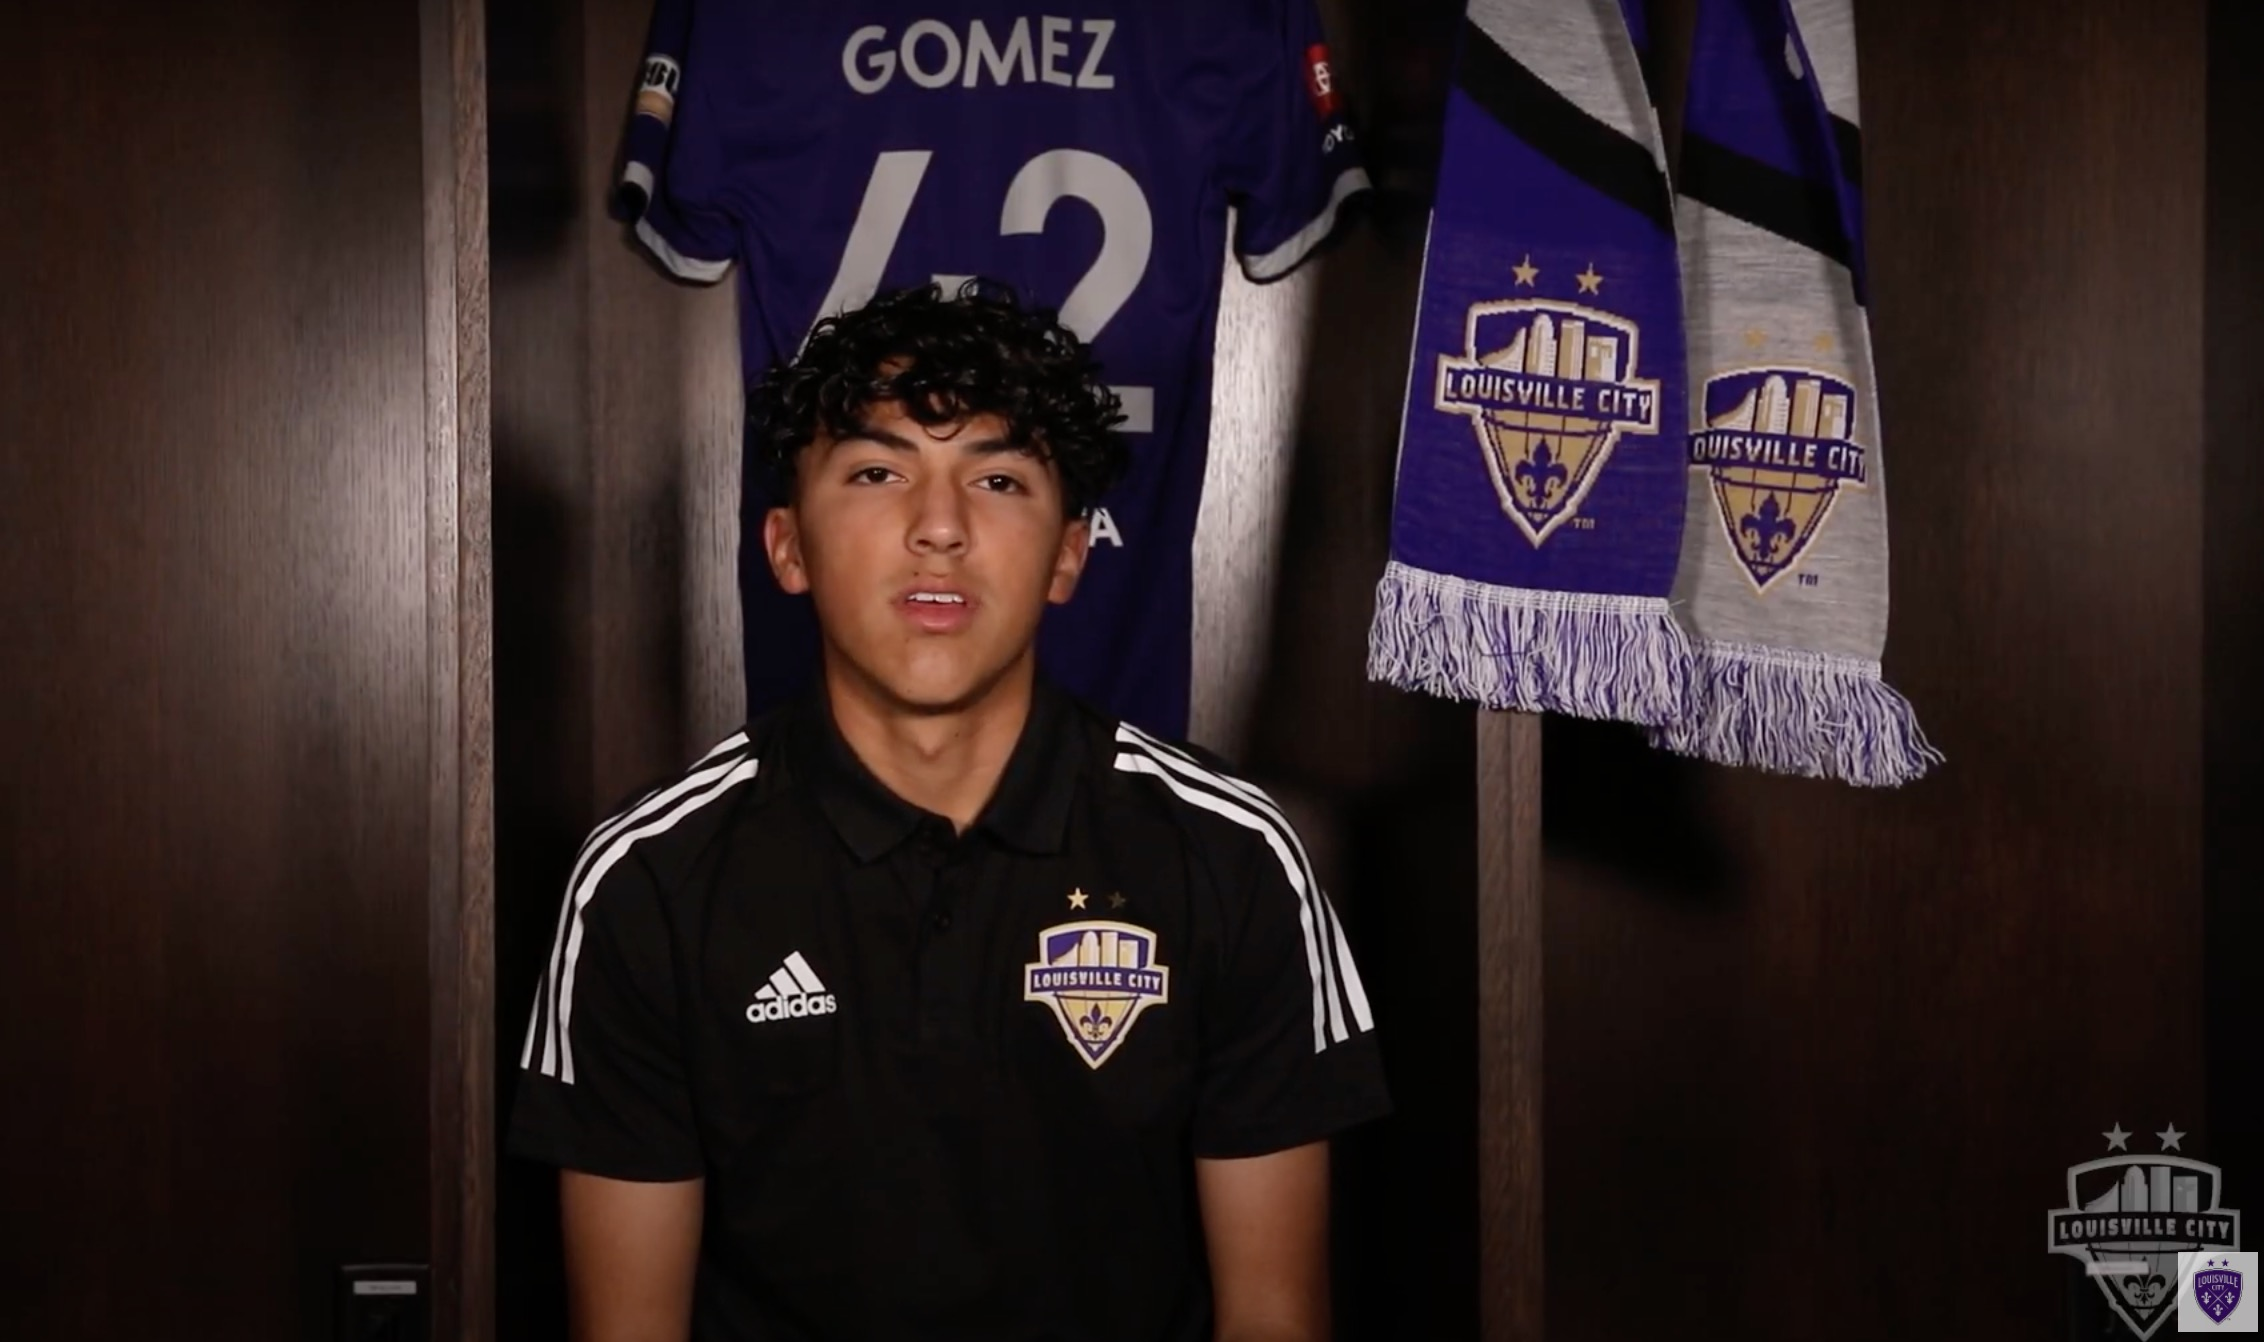 Gomez introducing himself to Louisville City fans last year.